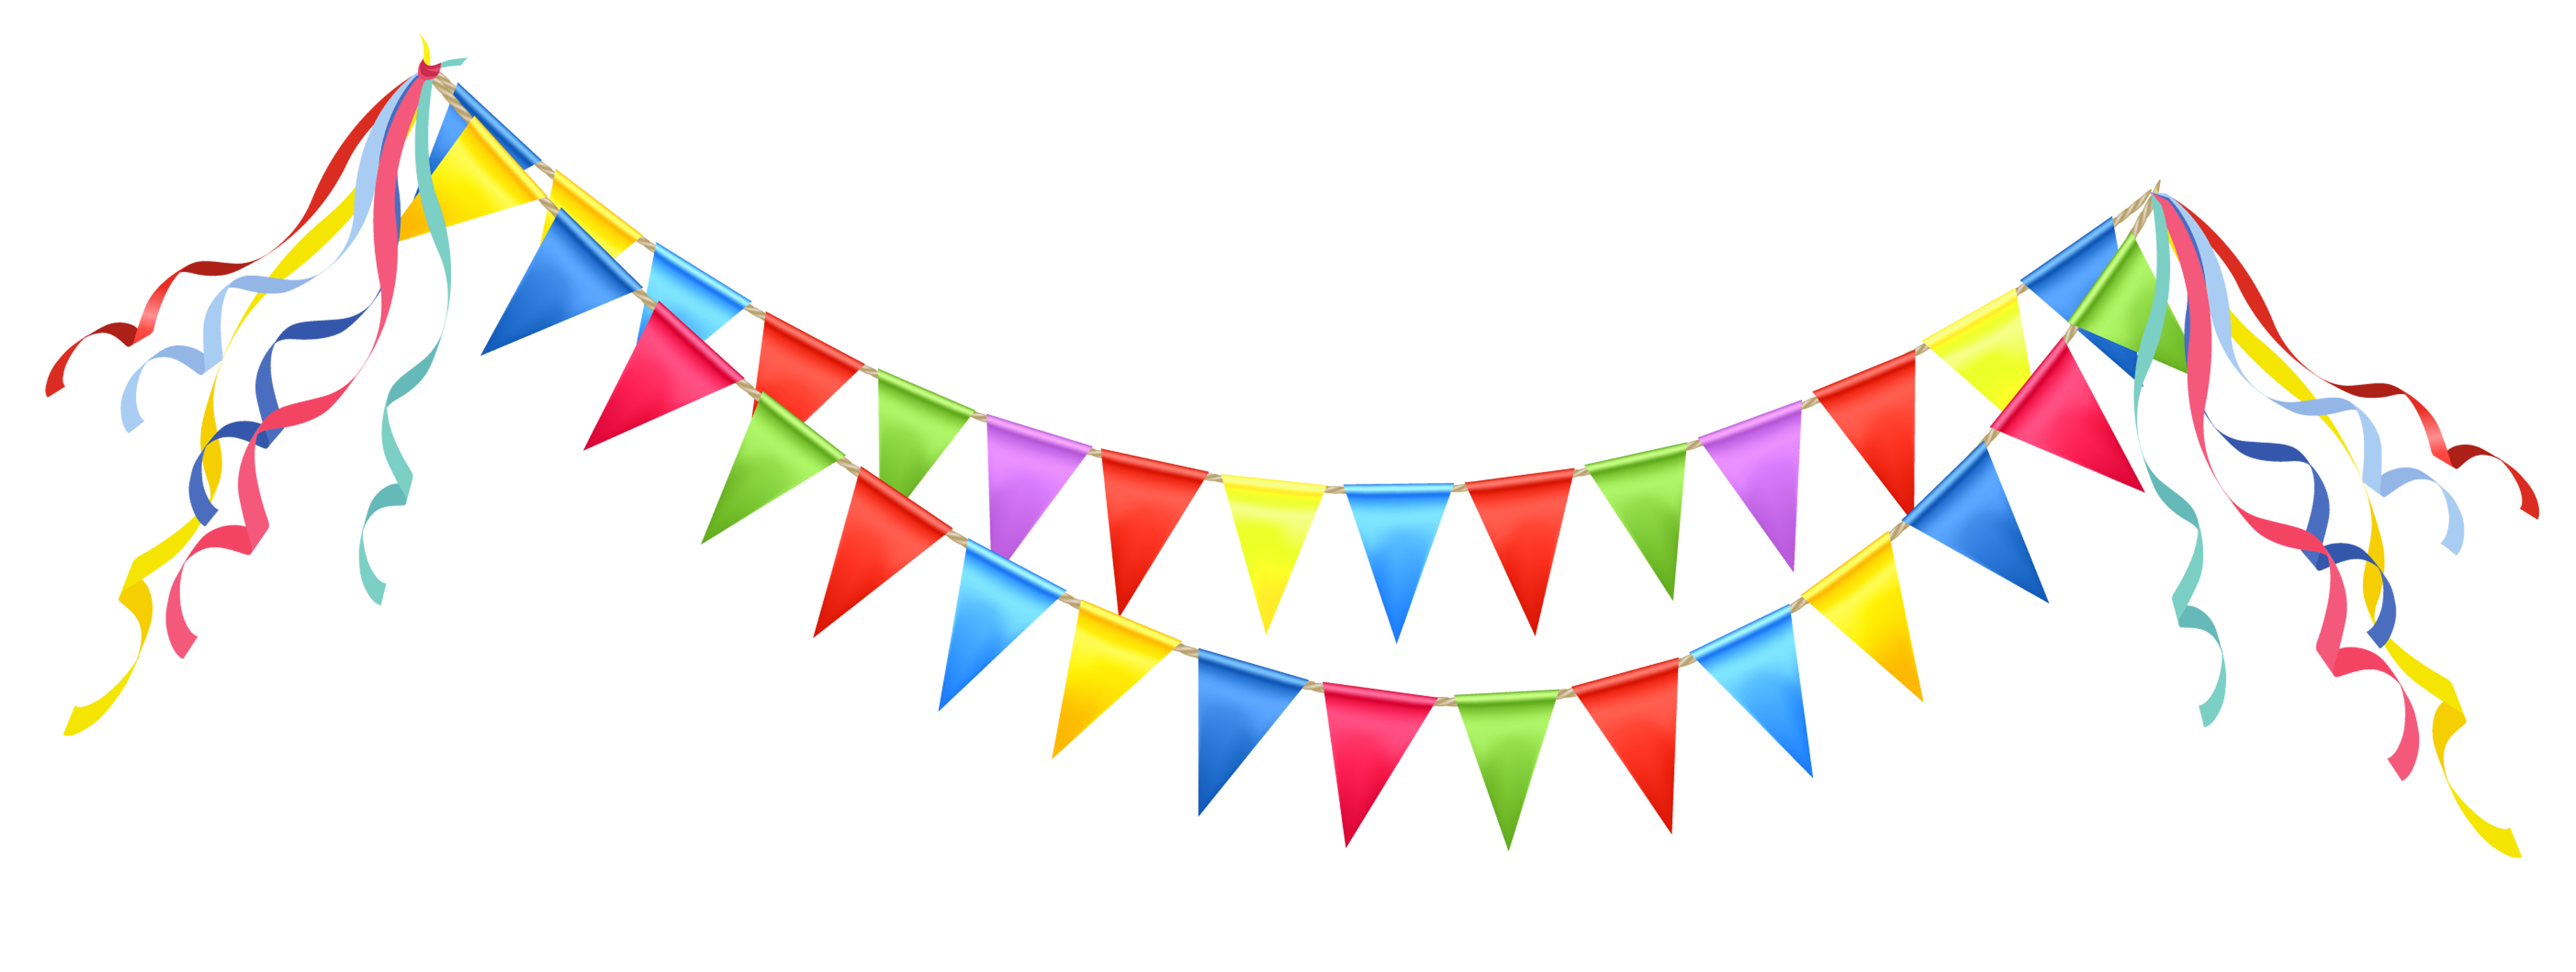 Clipart cupcake banner. Birthday party celebration jokingart